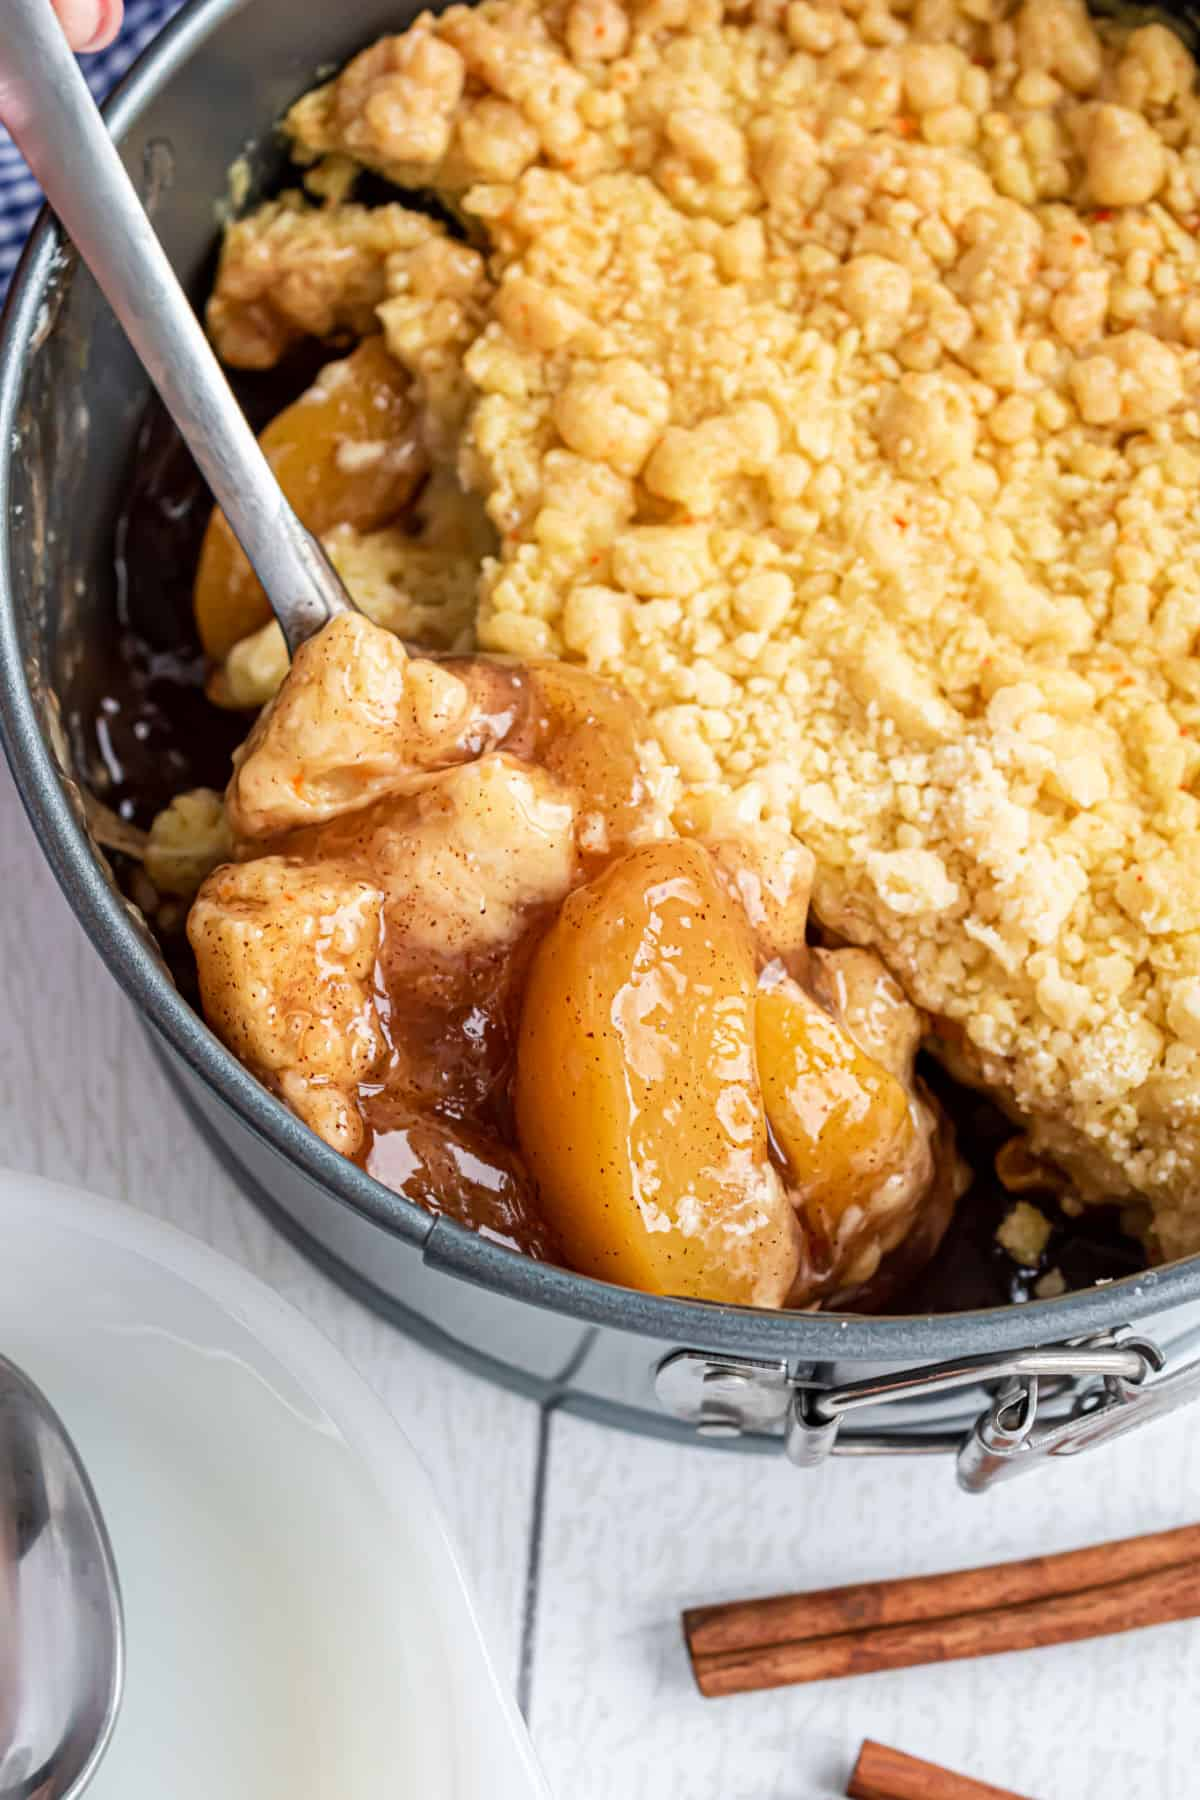 Scoop of peach cobbler being removed from springform pan.